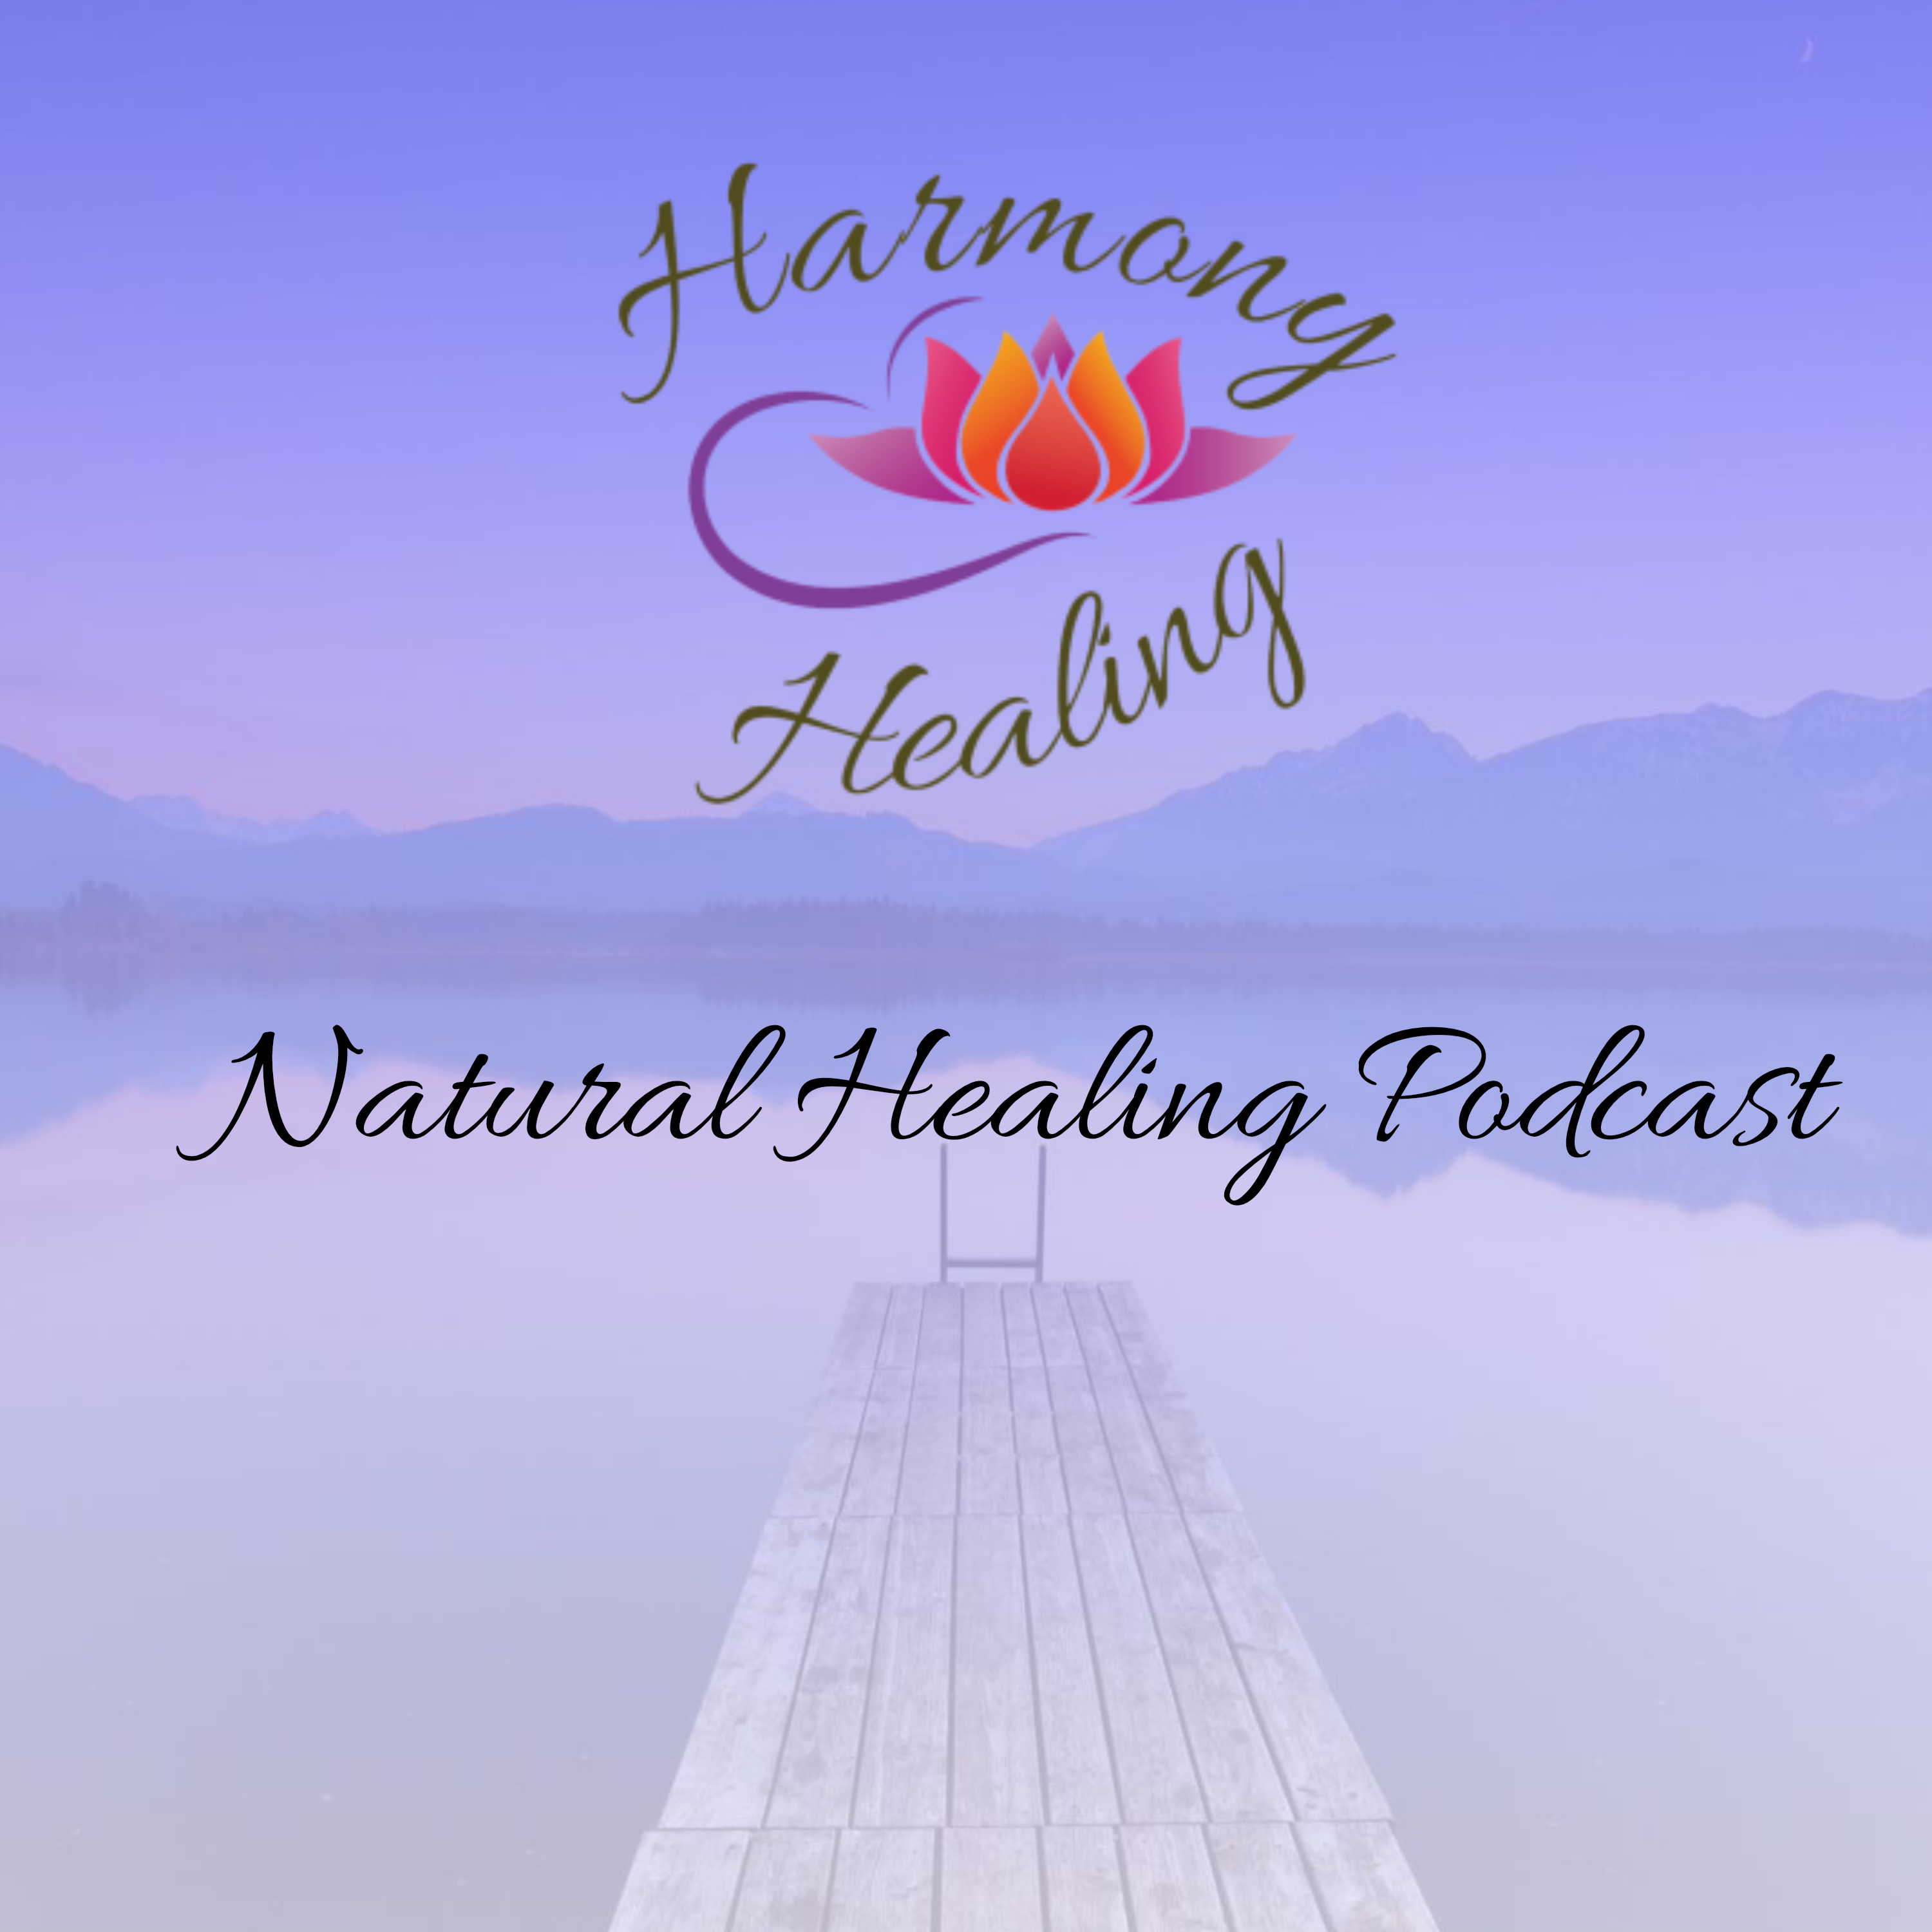 Harmony Healing - Listeners questions about Enlightened Healing